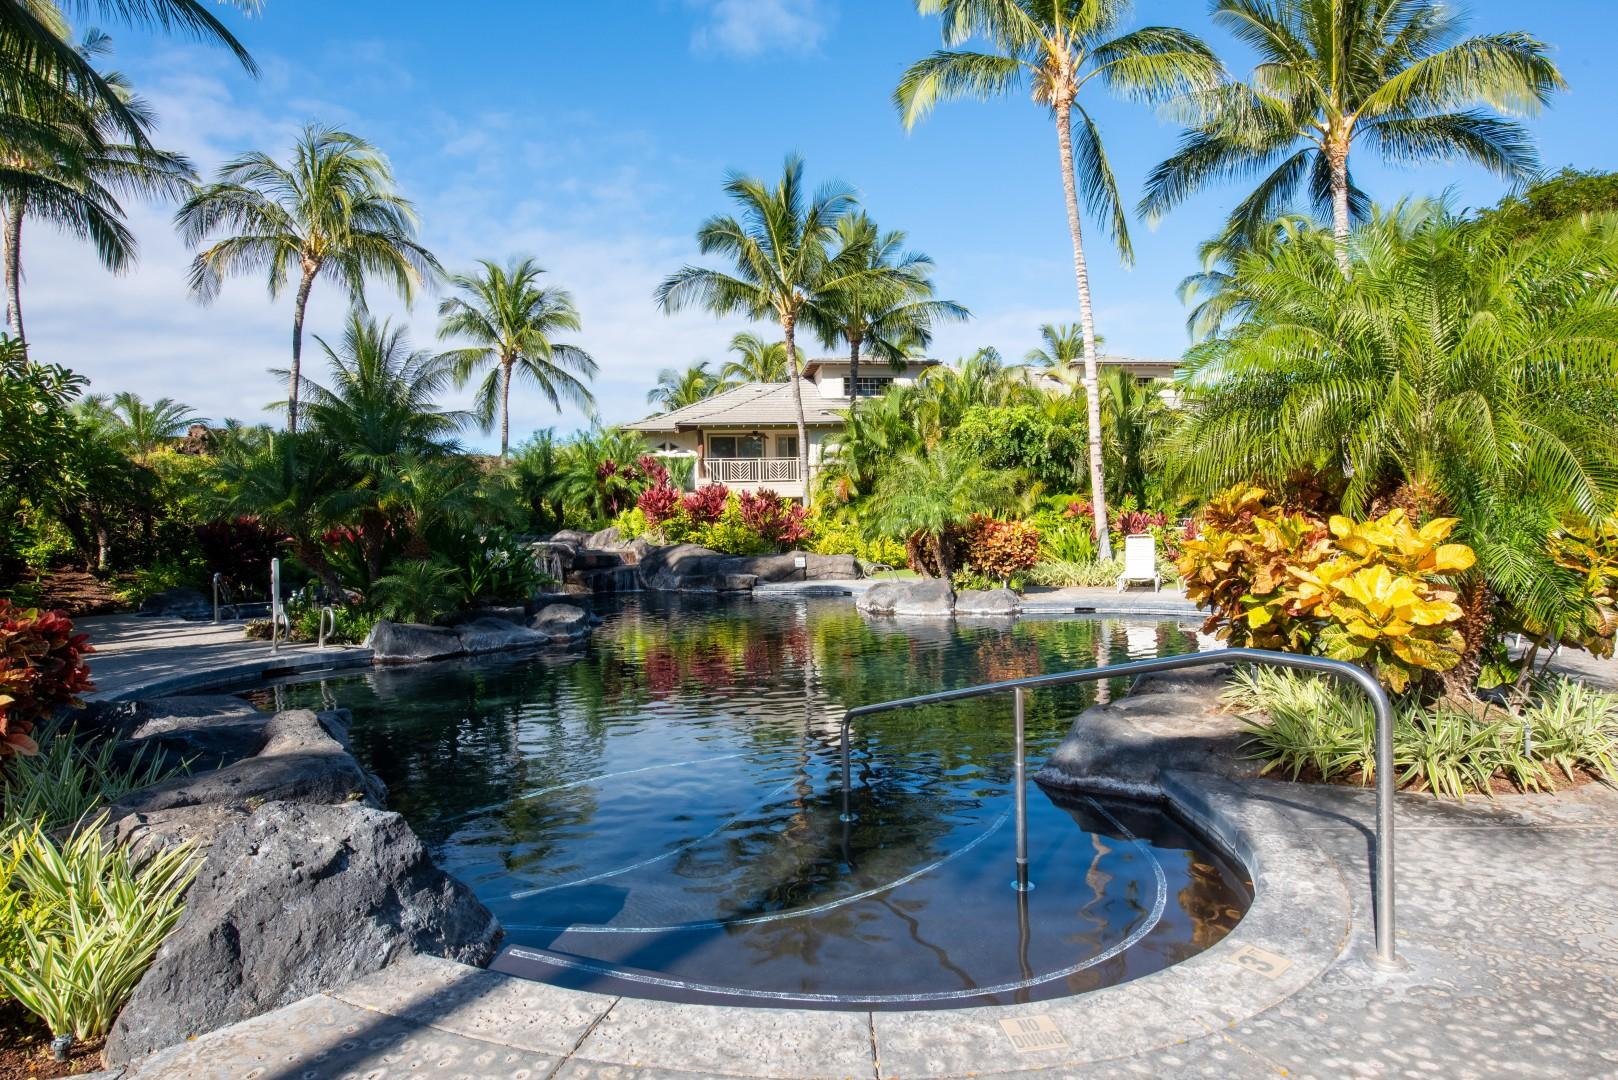 Lush Tropical Gardens Surround the Natural-Bottom Swimming Pool w/ Waterfall Cascade & Jacuzzi